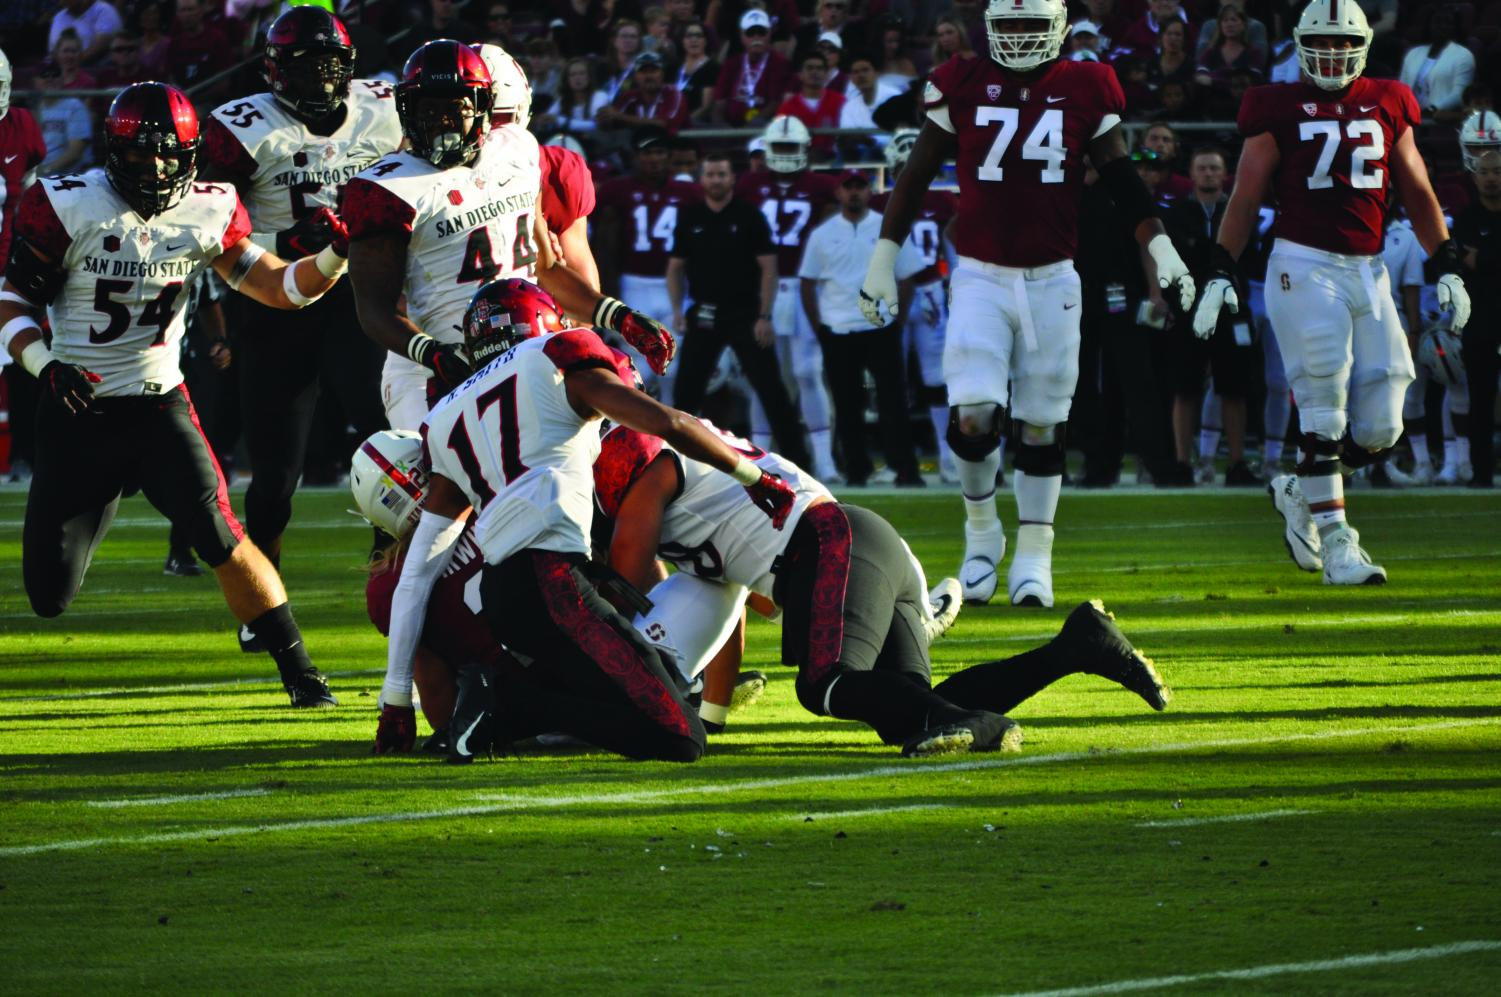 Junior cornerback Ron Smith (17) and sophomore linebacker Andrew Aleki tackle Stanford senior wide receiver Trenton Irwin following a catch during the Aztecs 31-10 loss to Stanford on Aug. 31 at Stanford Stadium.